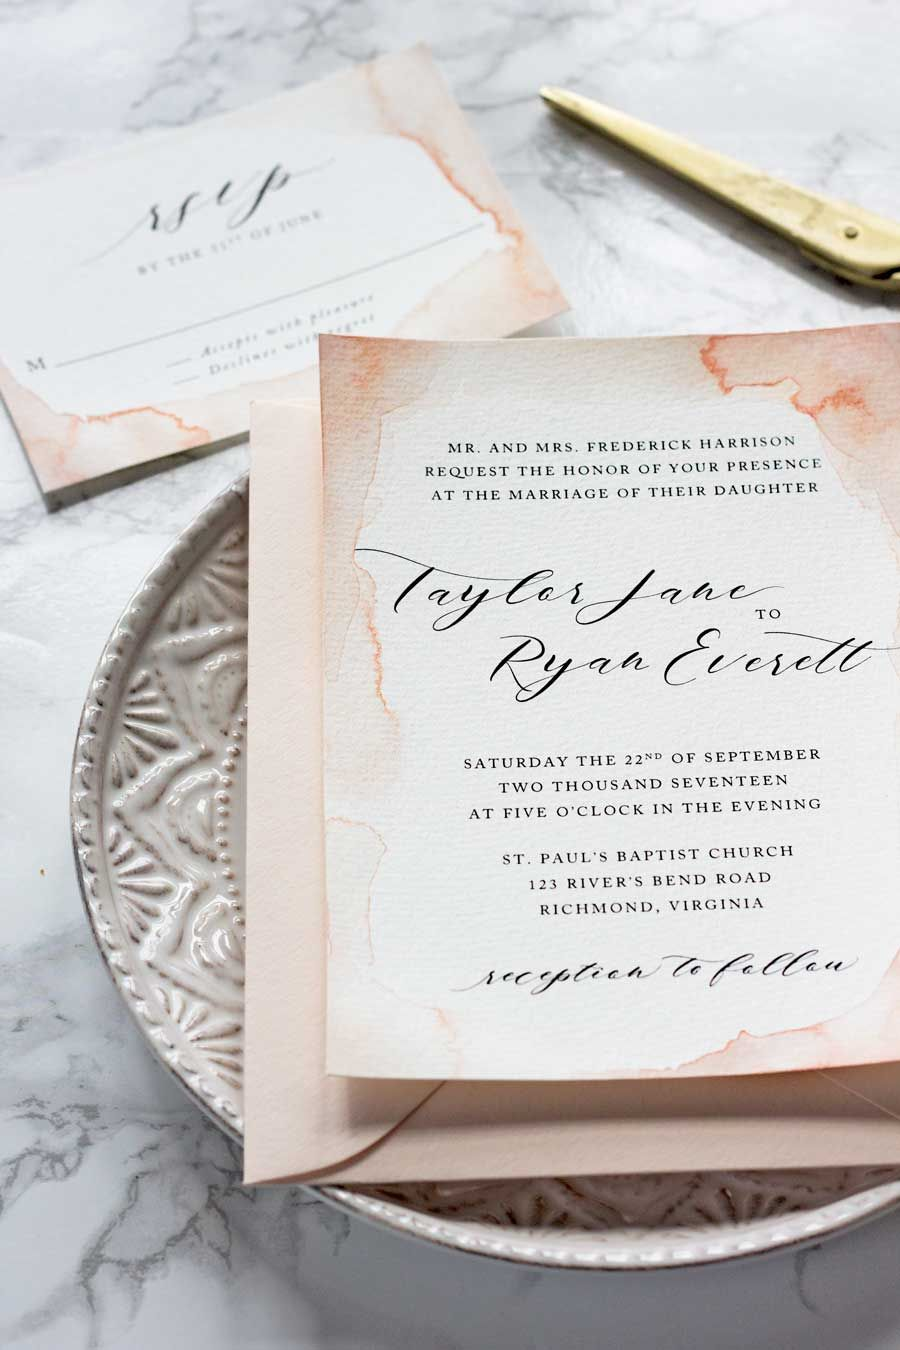 How To Paint Your Own Watercolor Wedding Invitations On A Budget And Make Them Look Like Million Bucks: Wedding Invitations On A Budget At Reisefeber.org